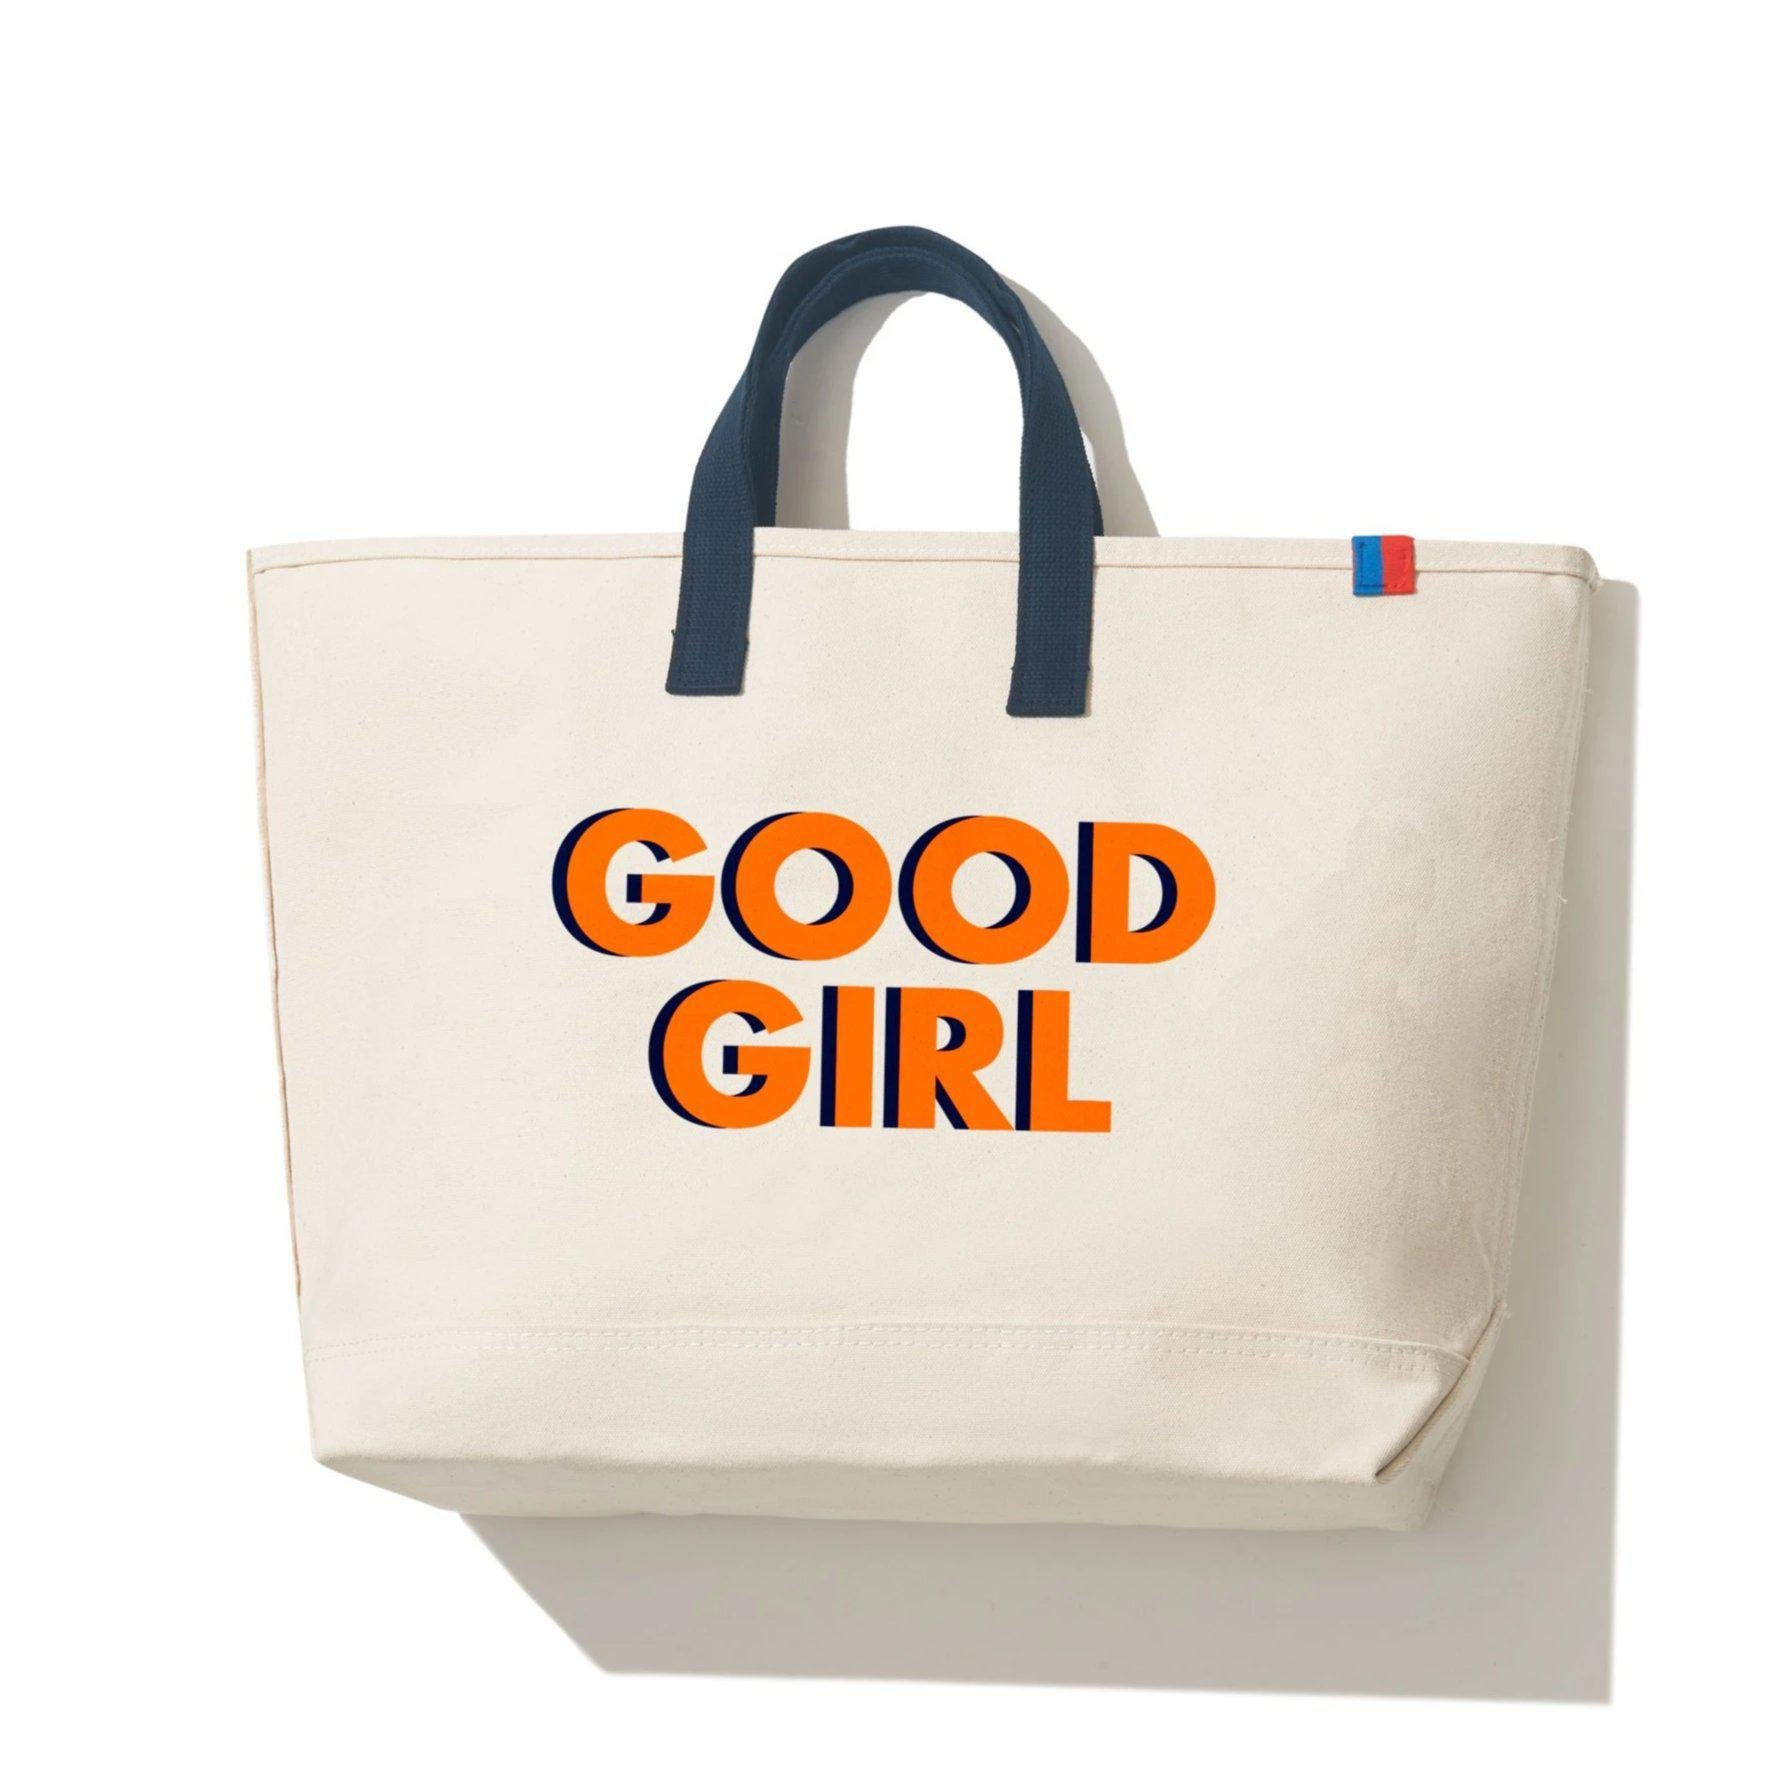 The GOOD GIRL Tote - Canvas